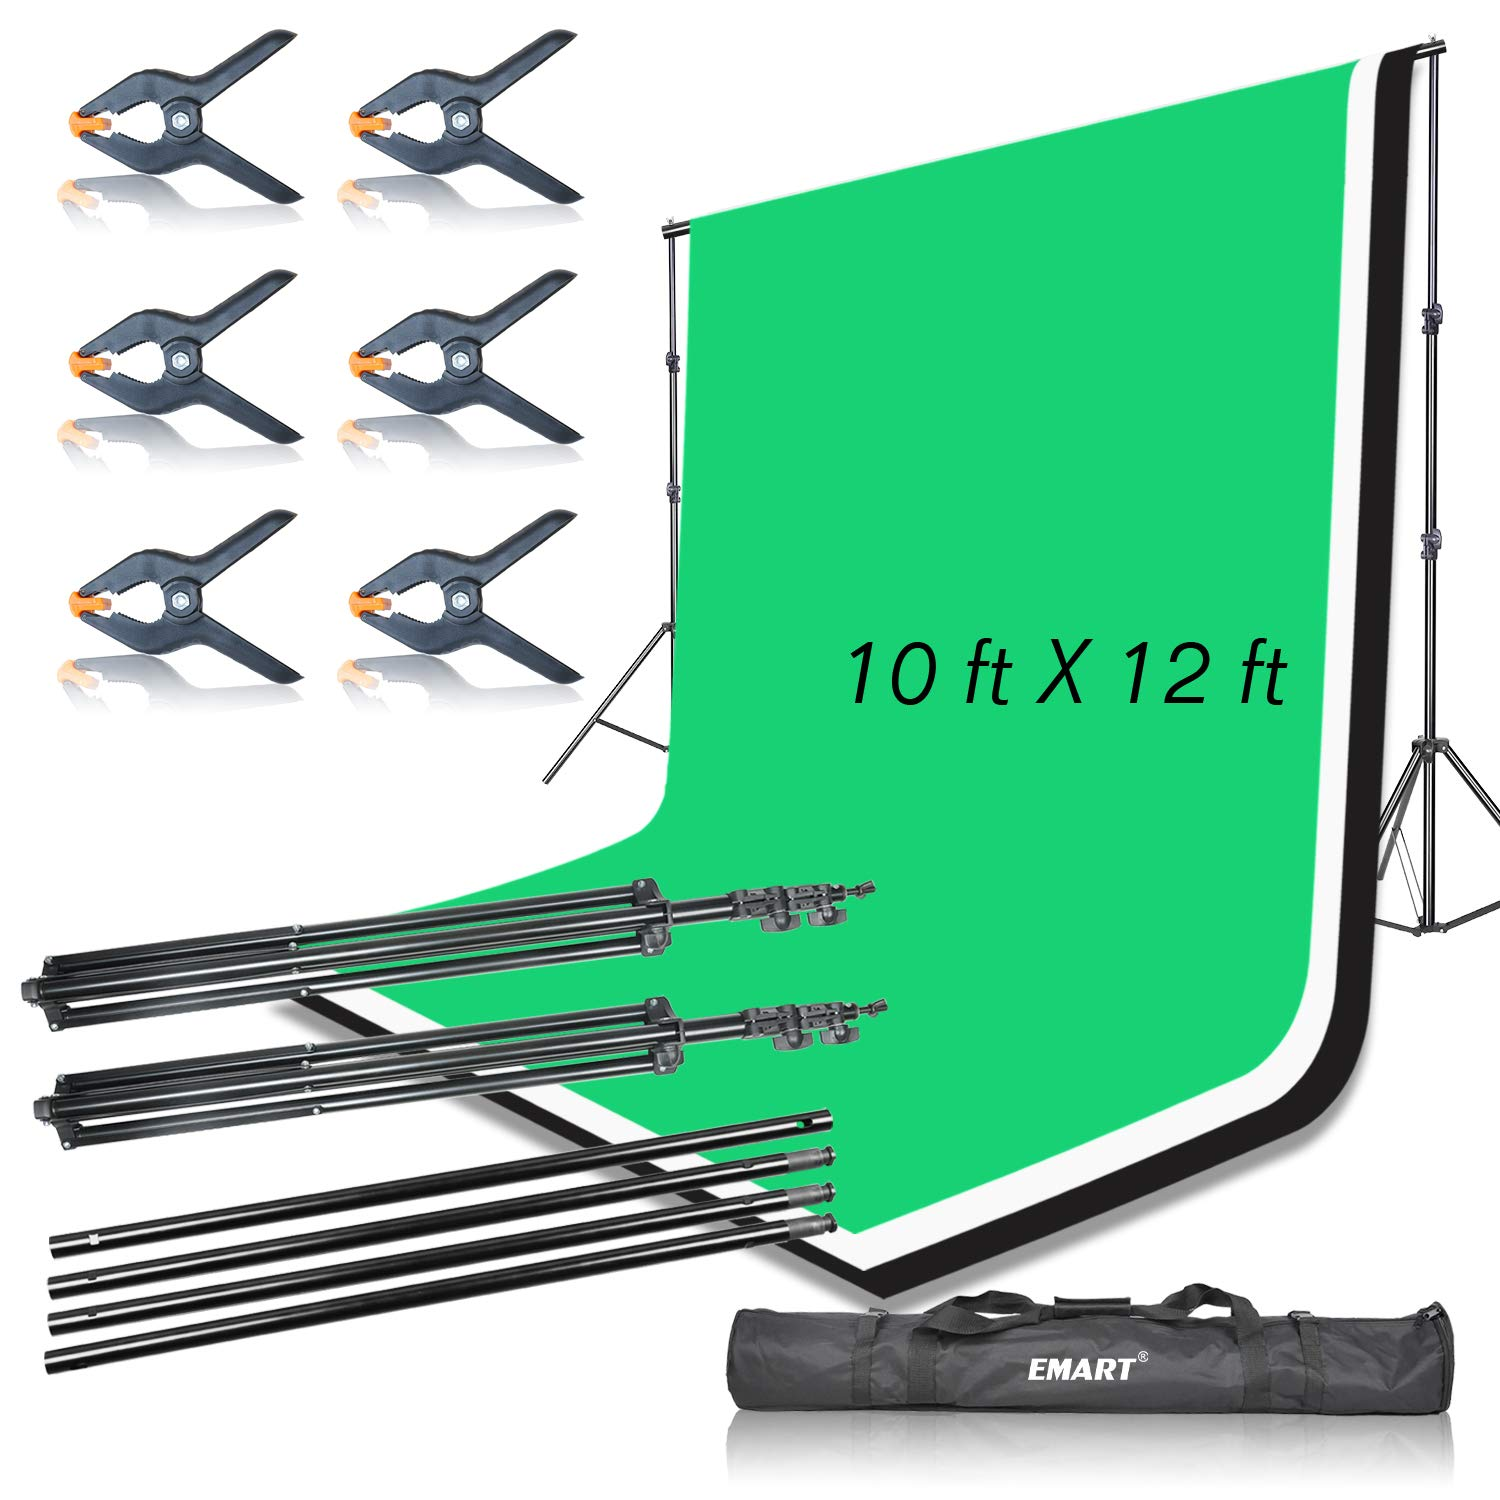 Emart Portable Photo Studio 9.2x10ft Background Support System with 3 Color Muslin Backdrops (Green Black White, 10ft X 12ft) for Portrait, Product Photography and Video Shooting by EMART